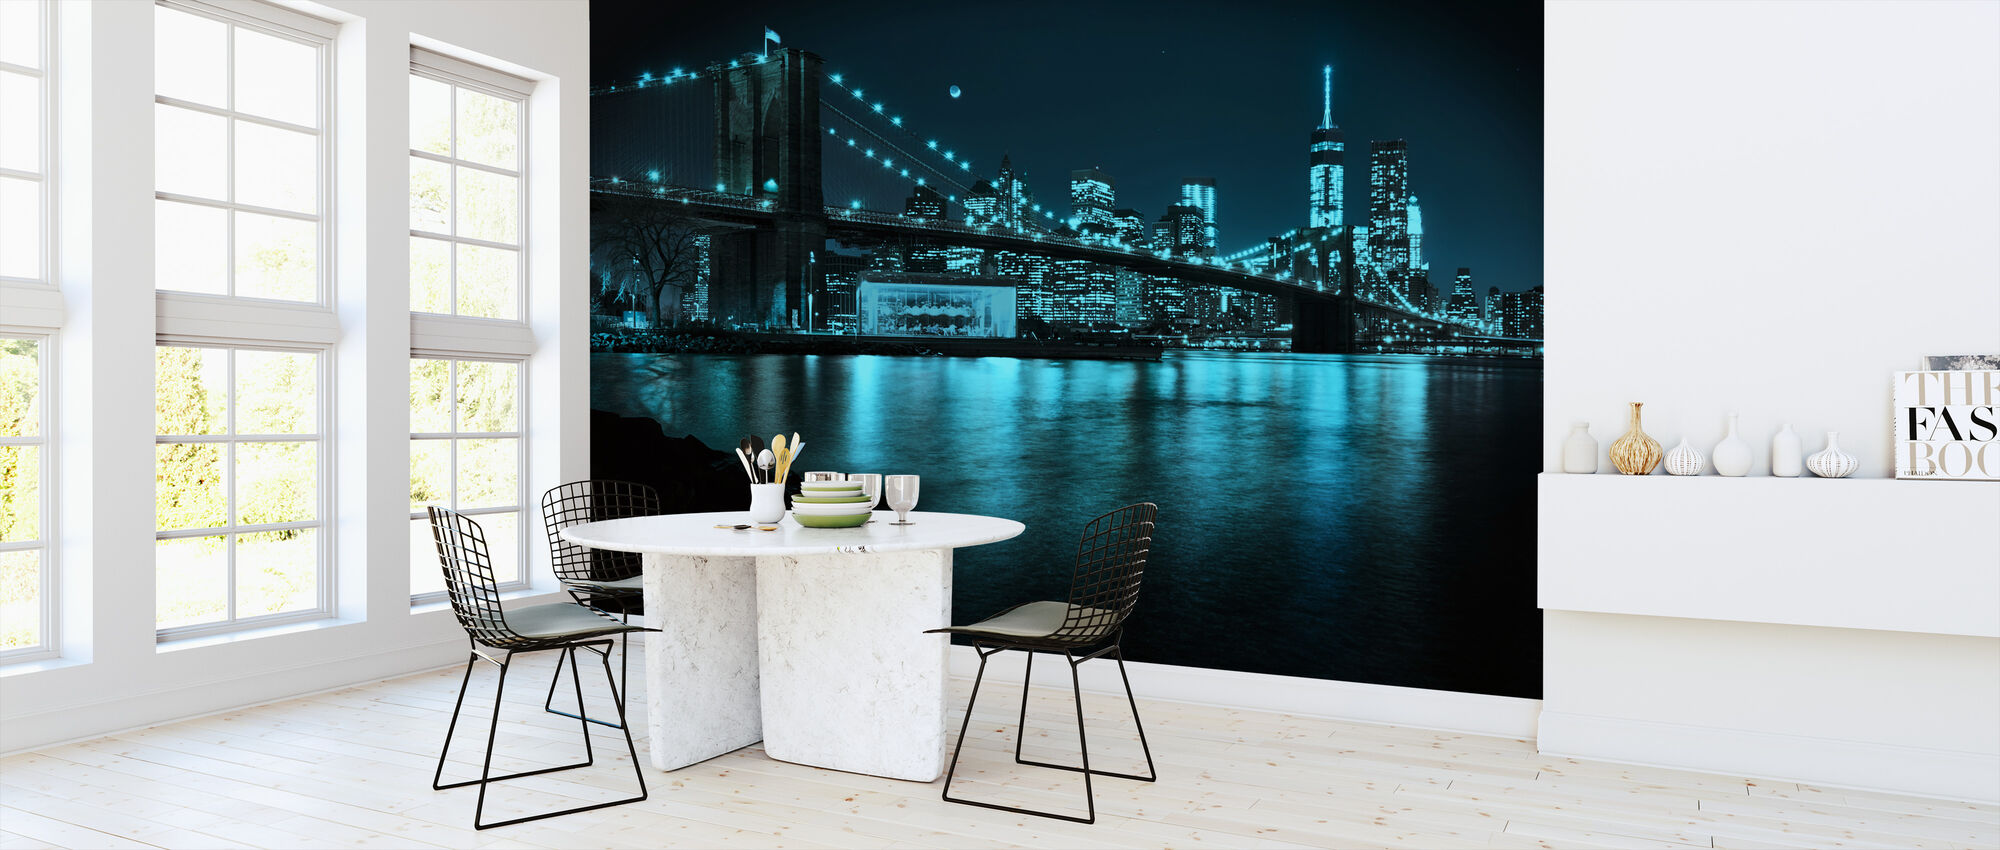 New Freedom Tower and Brooklyn Bridge at night - Wallpaper - Kitchen